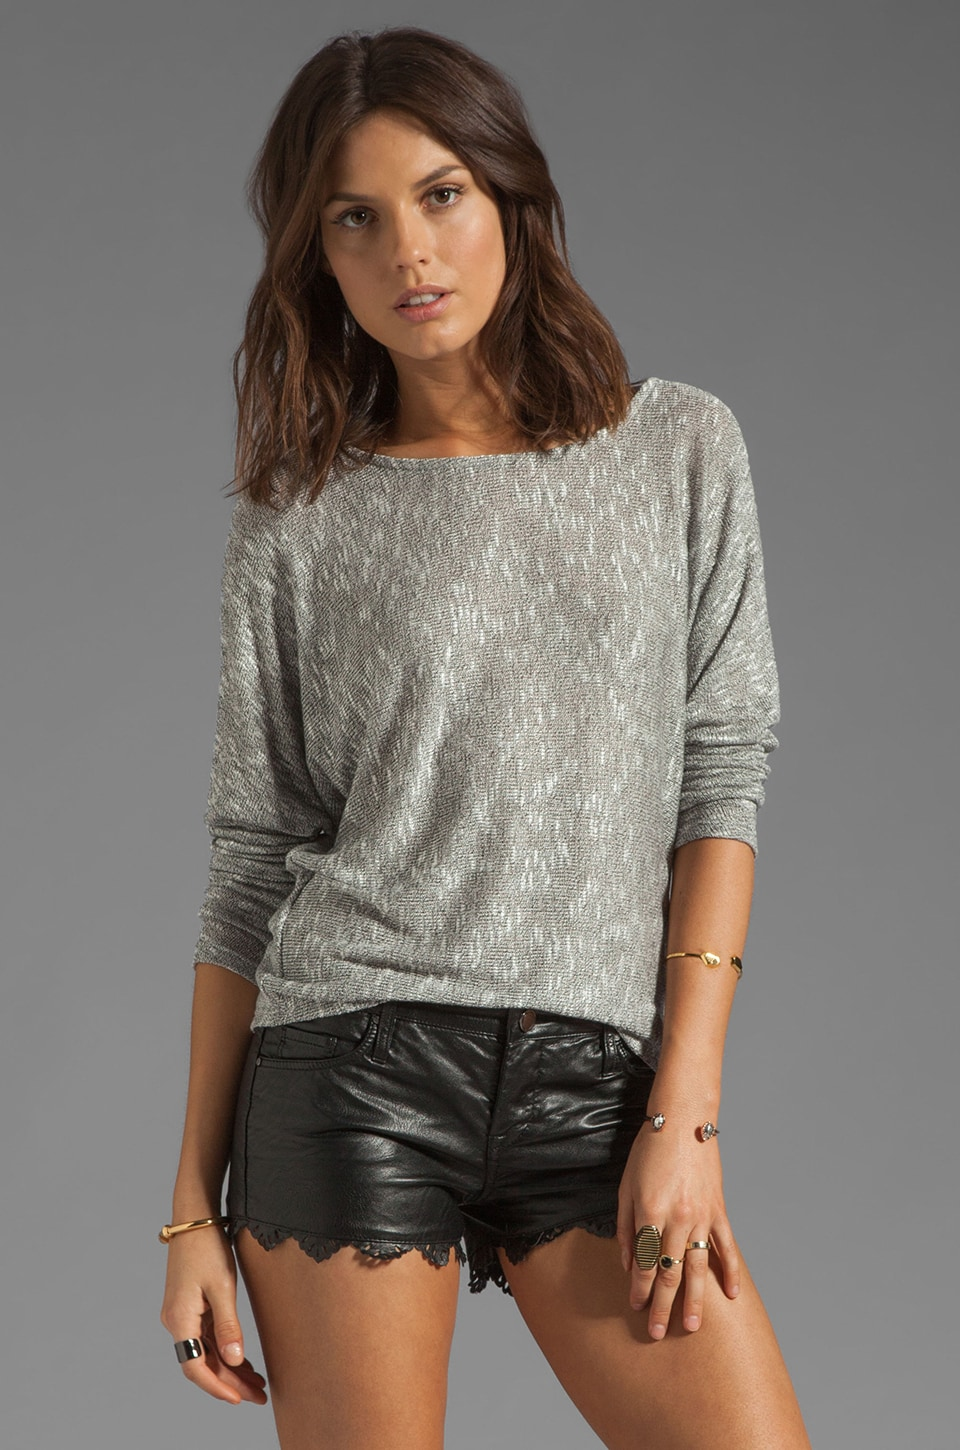 Whetherly Jacqui Sheer Boucle Tee in Black/White